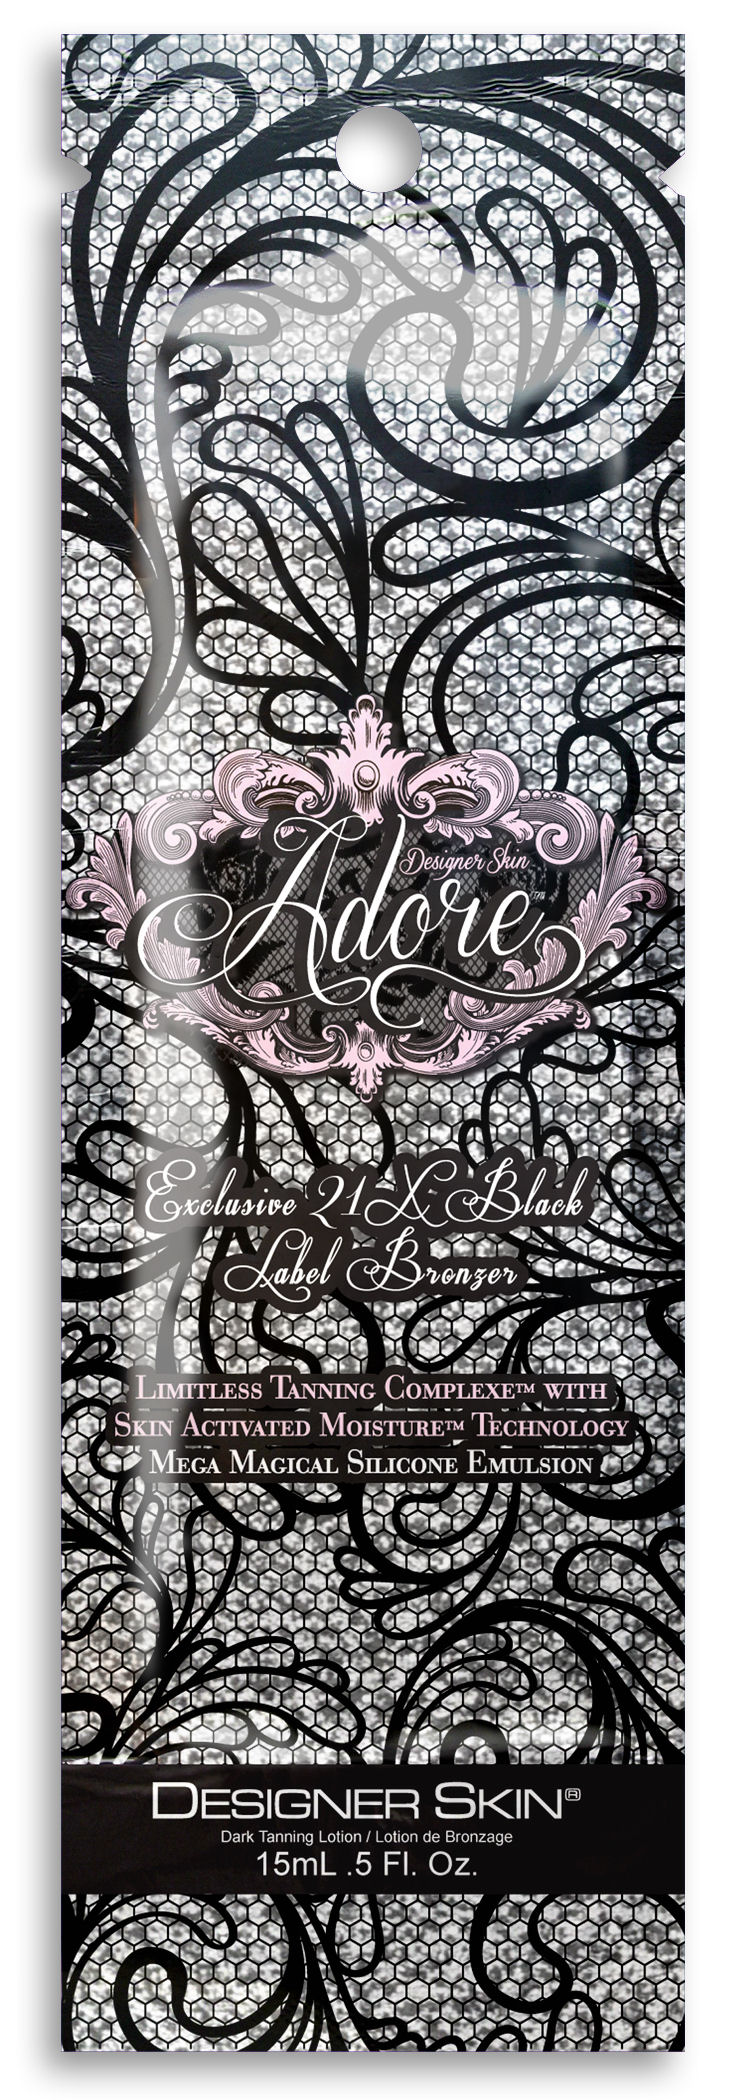 Designer Skin Adore™ Exclusive 21X Black Label Bronzer